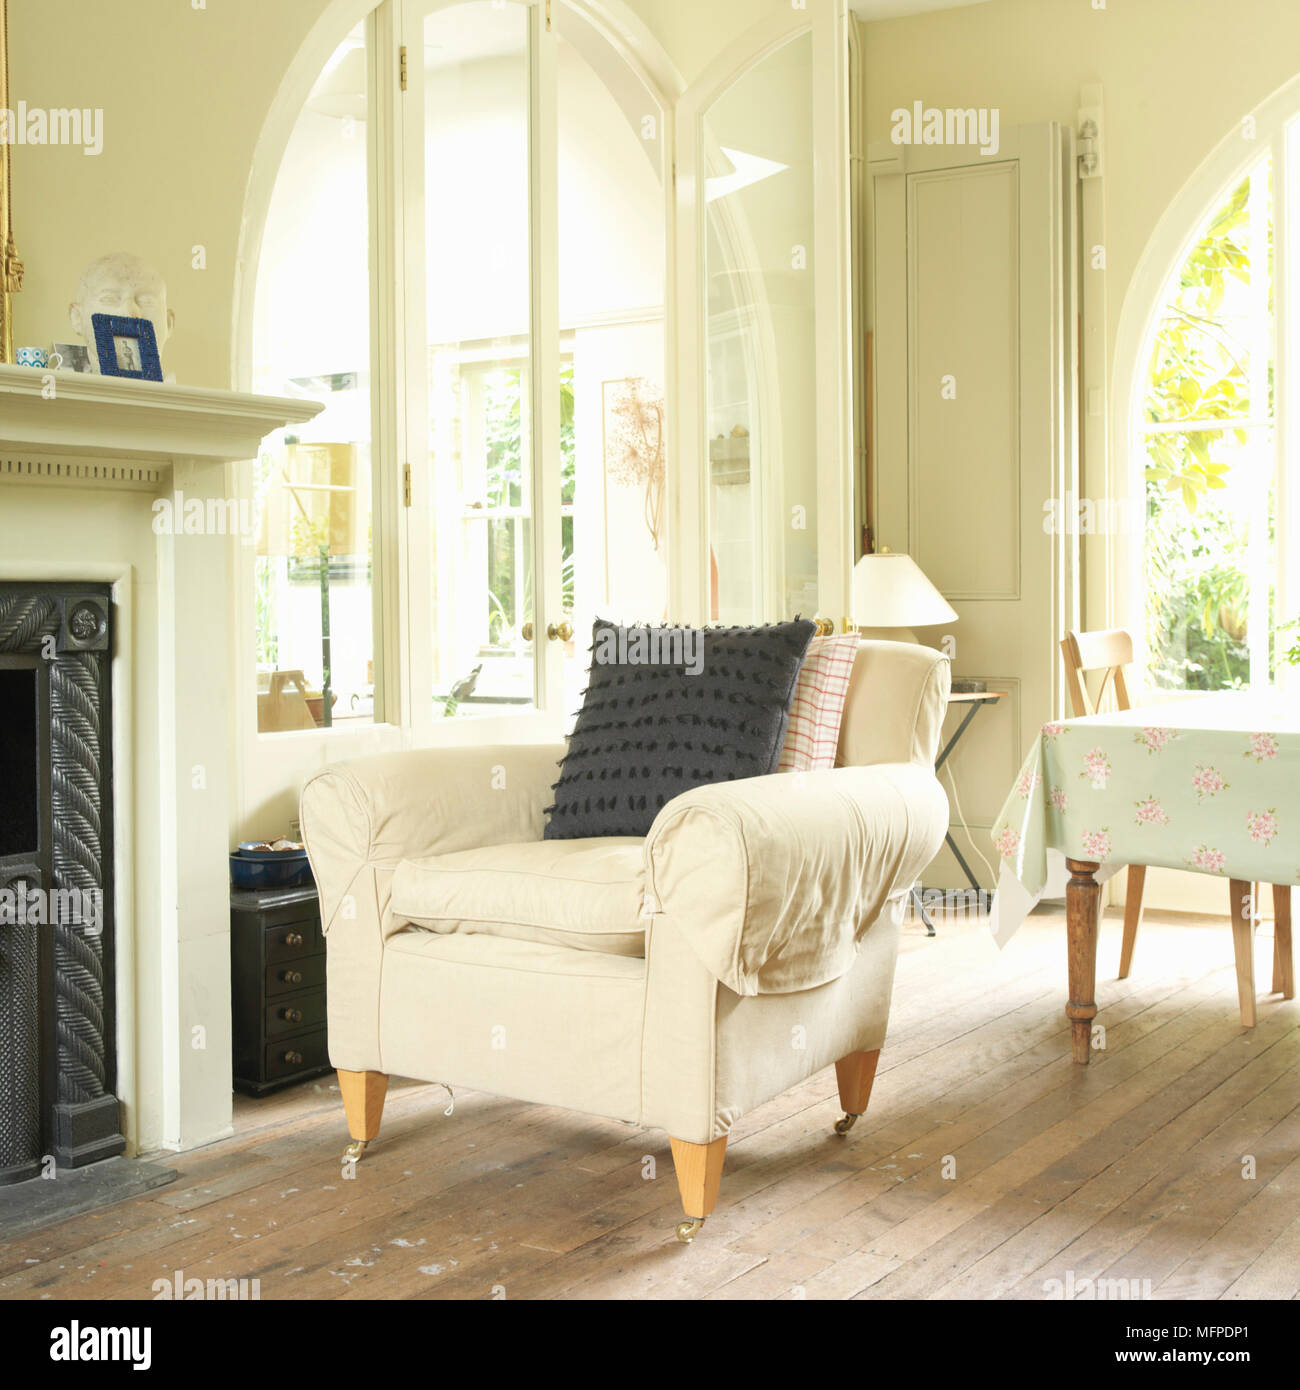 A traditional sitting room with an upholstered armchair next to a metal framed fireplace, open arched doors and a table behind. - Stock Image